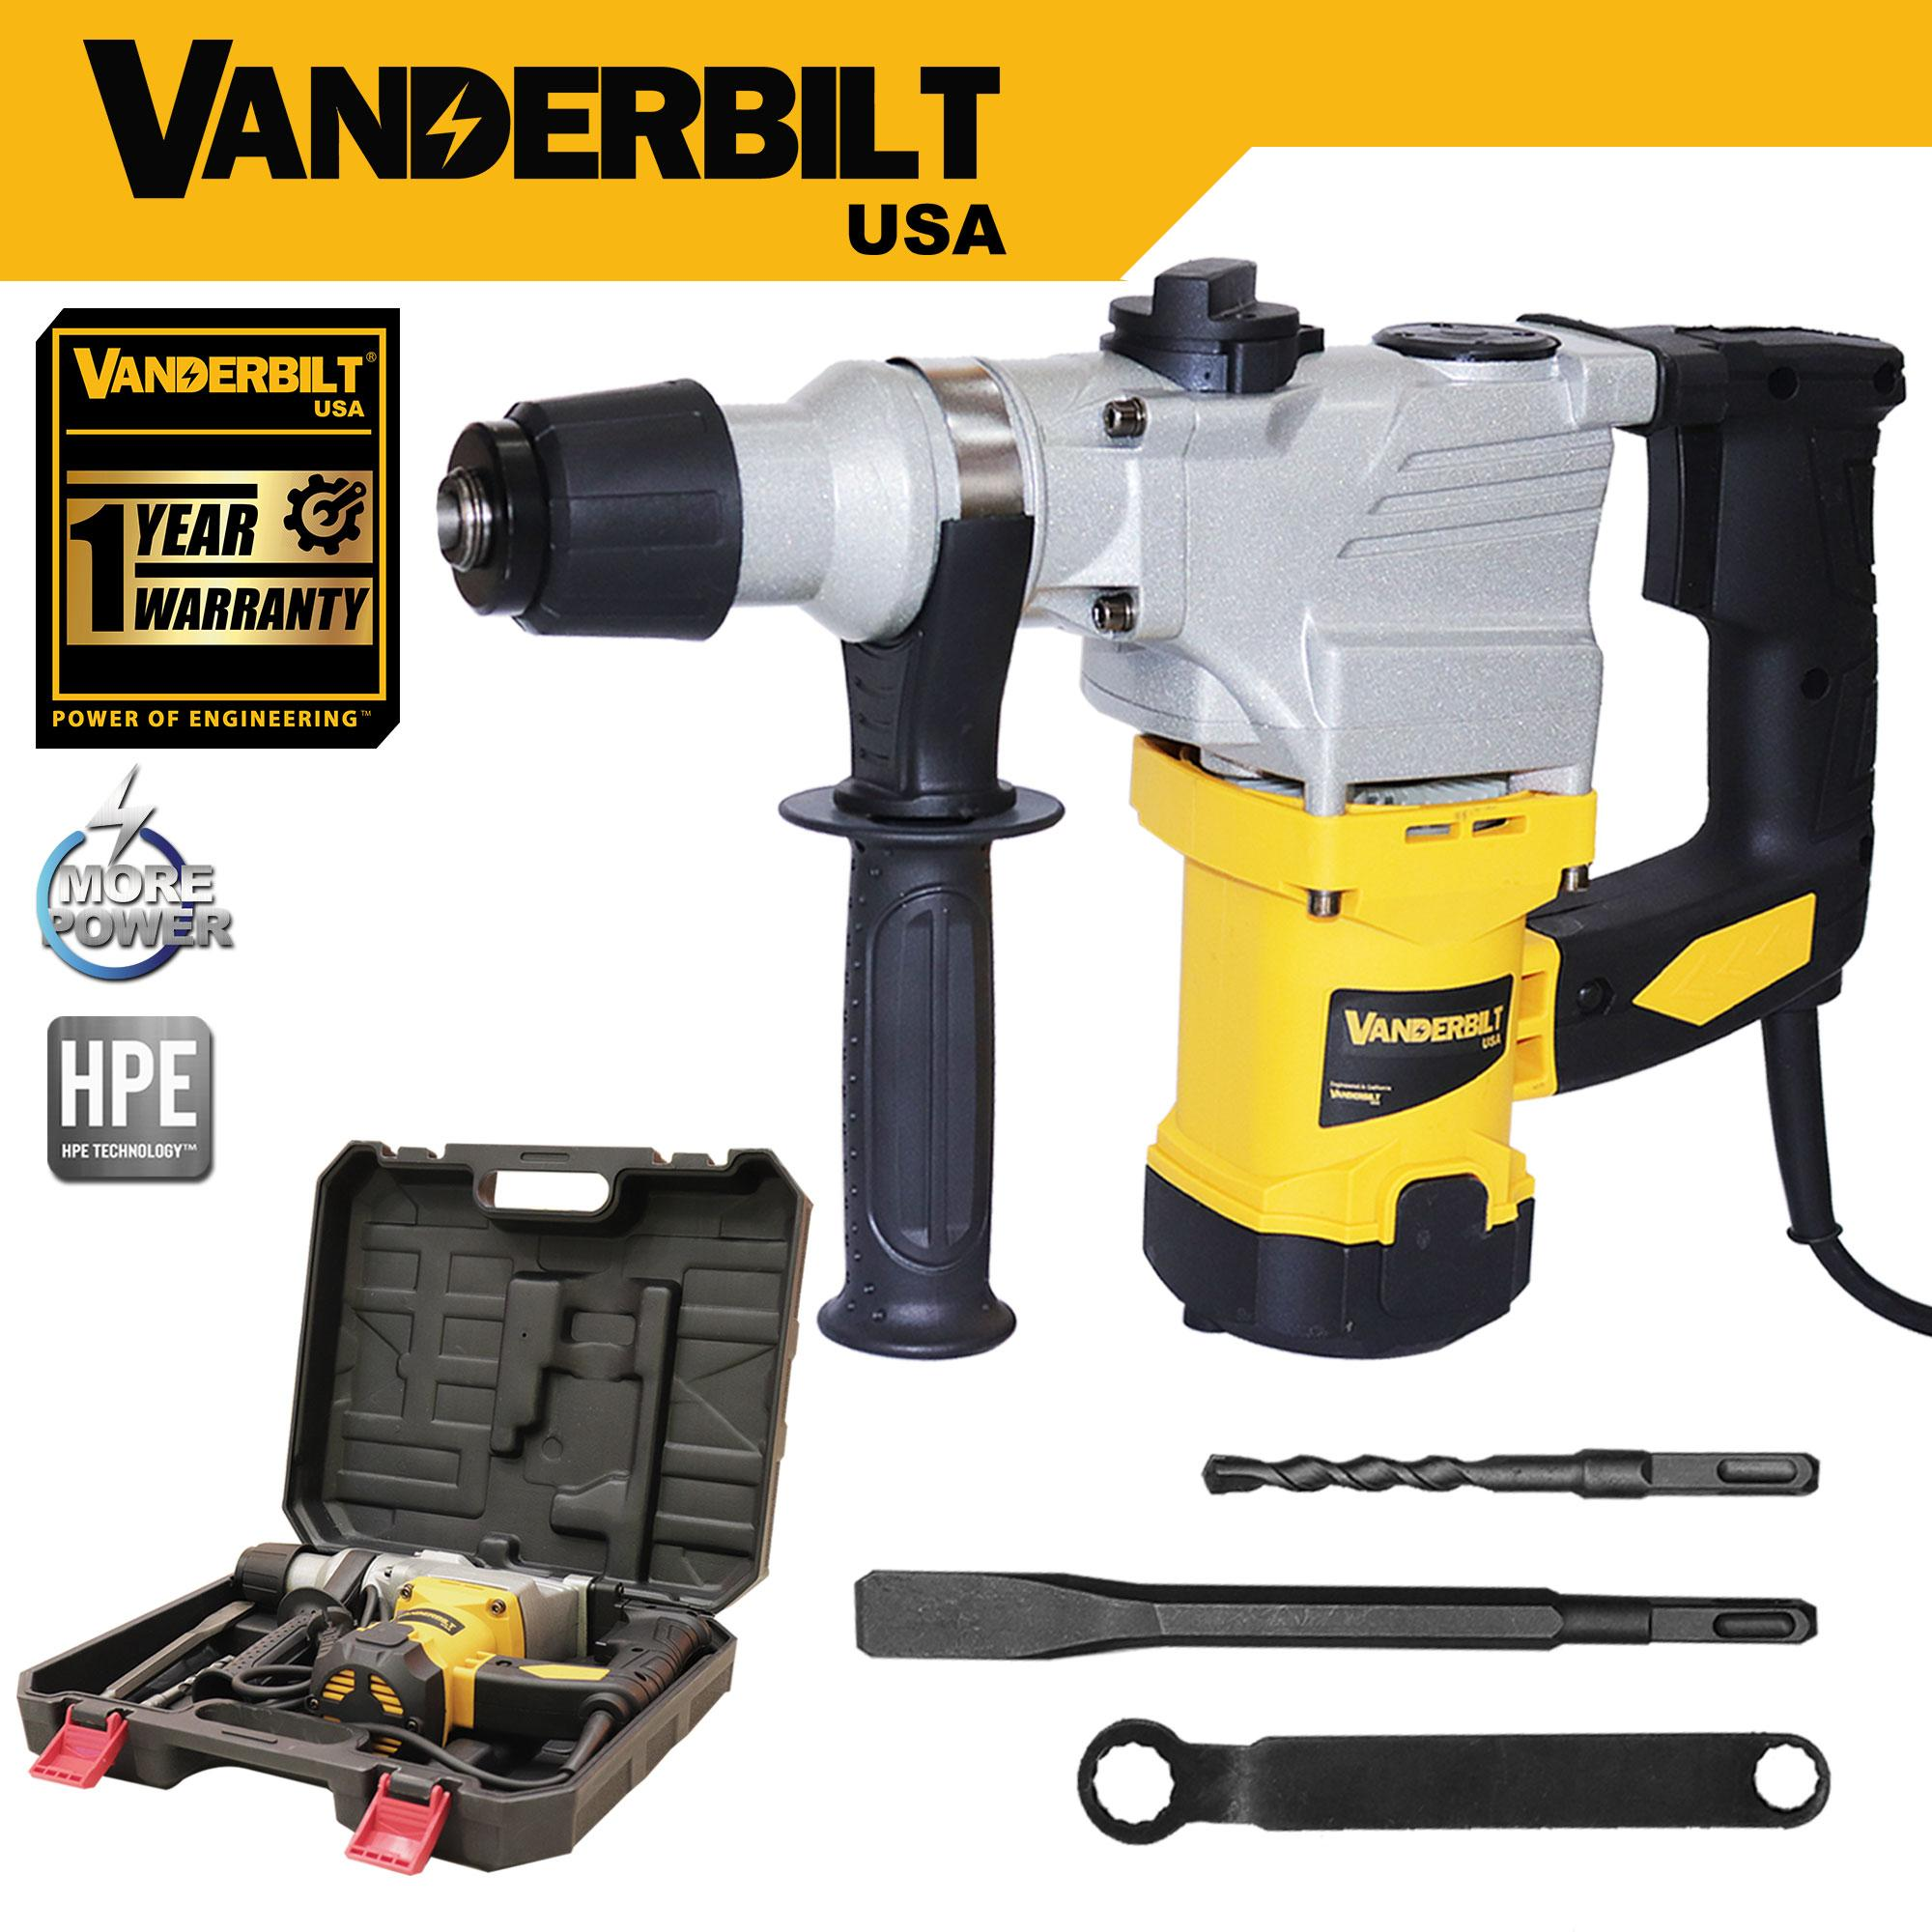 Professional Power Tools 1650W 220V Rotary Hammer Drill, Chipping Gun Vanderbilt USA Philippines